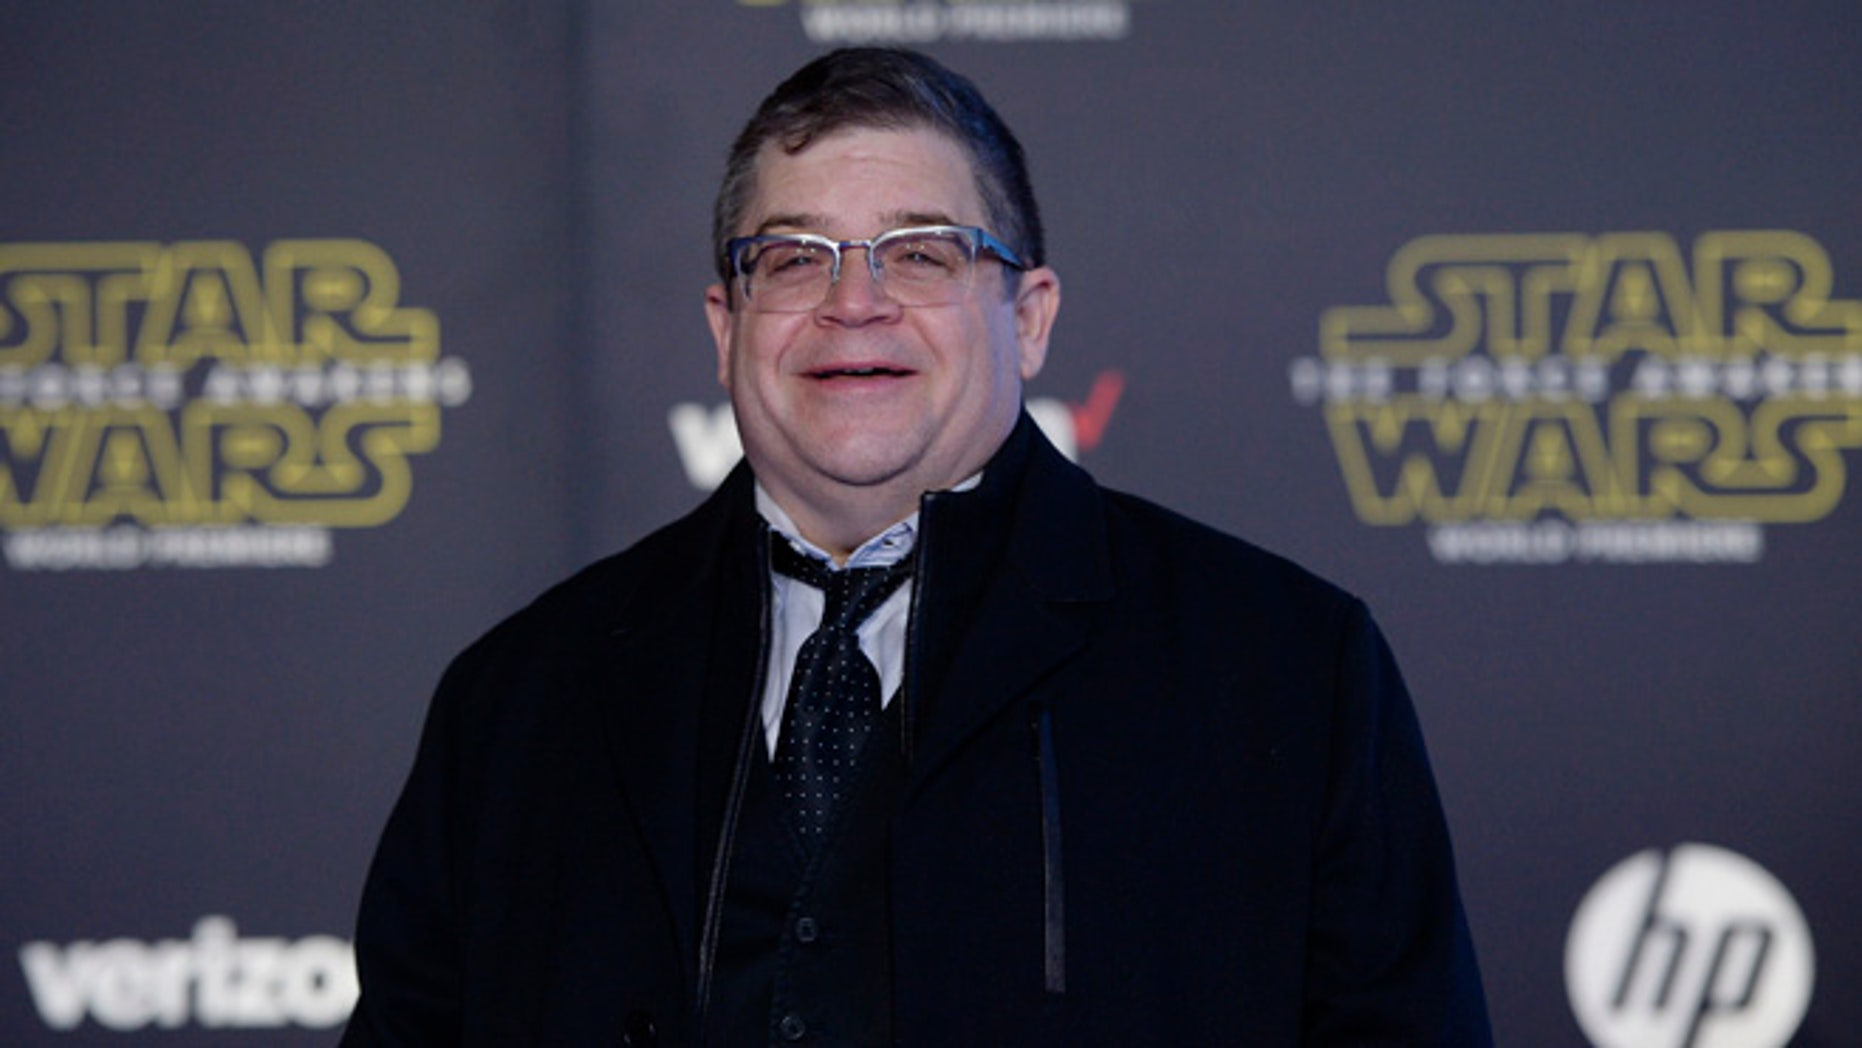 Patton Oswalt donated to the GoFundMe of a person who attacked him on Twitter.